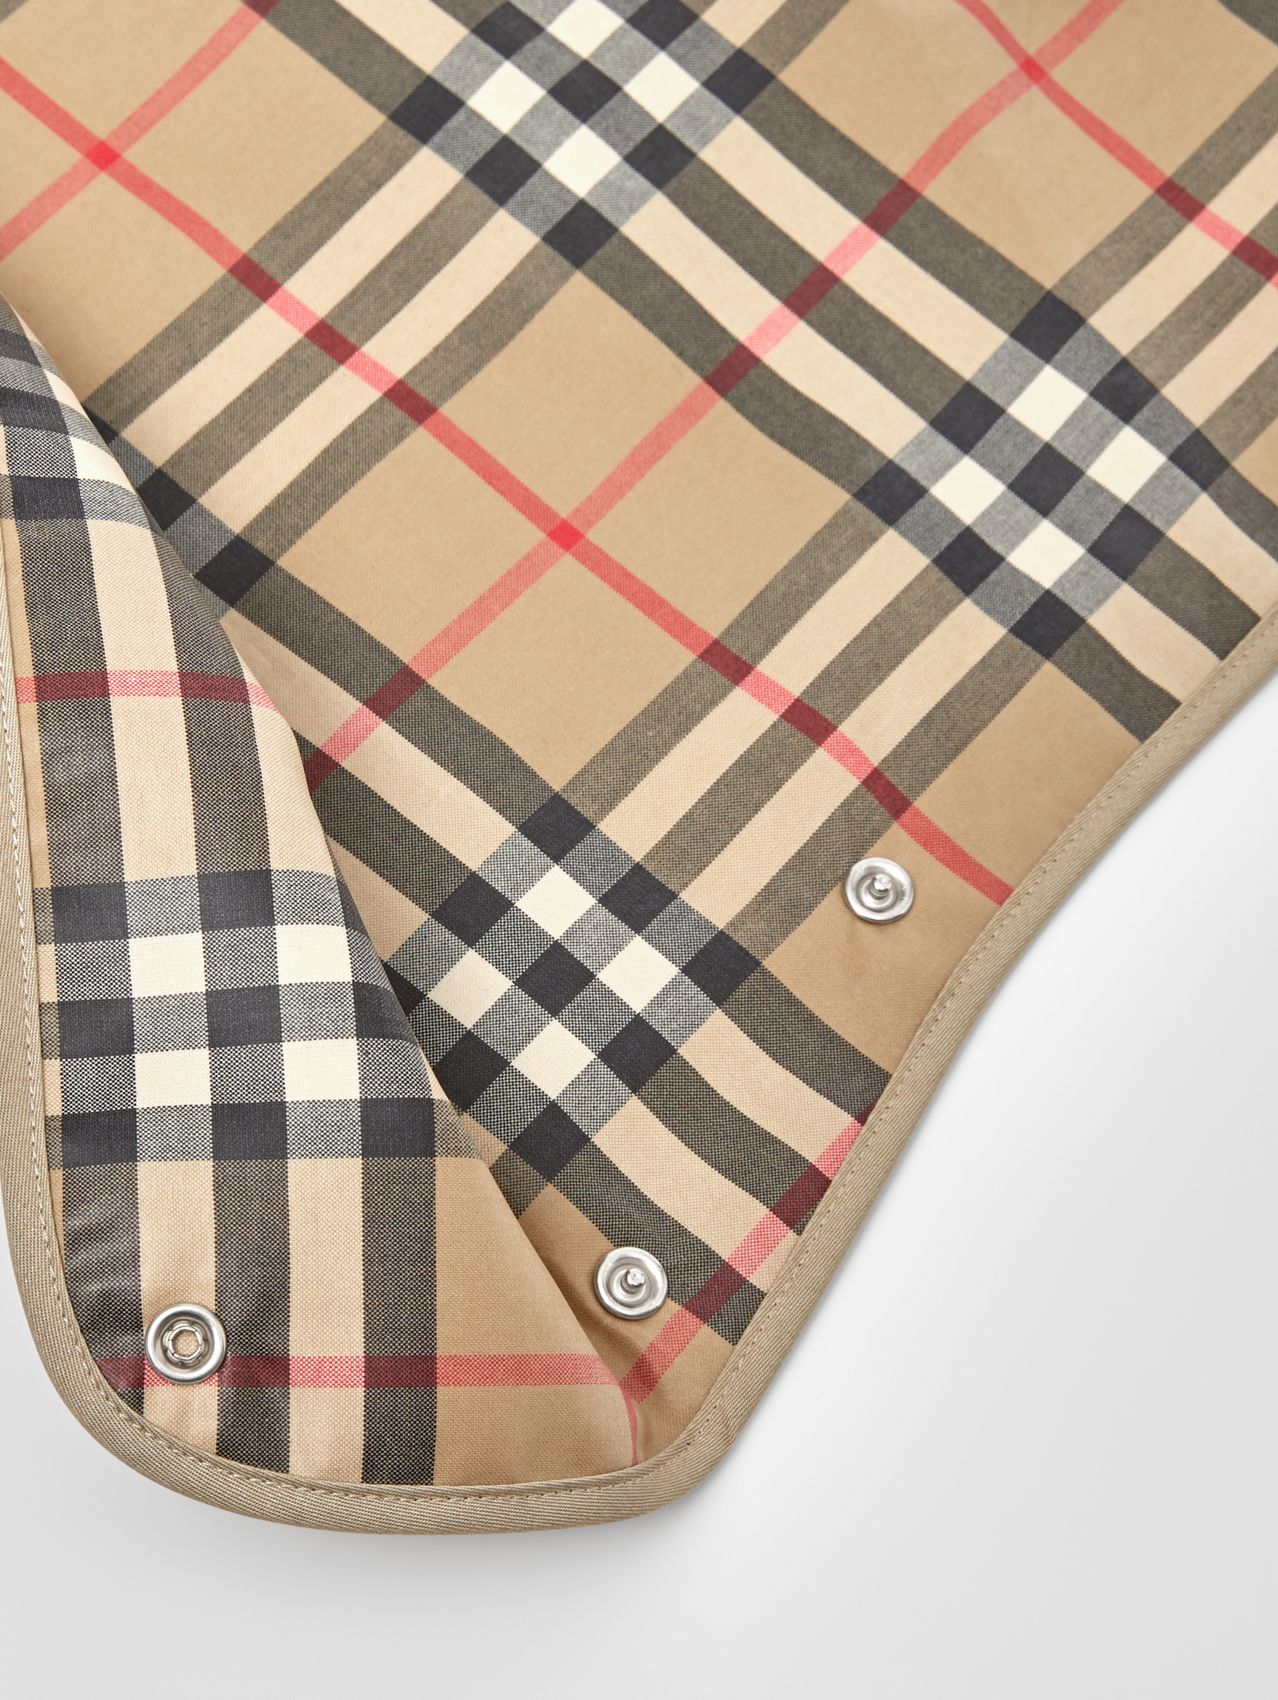 Coated Vintage Check and Icon Stripe Bib (Archive Beige)